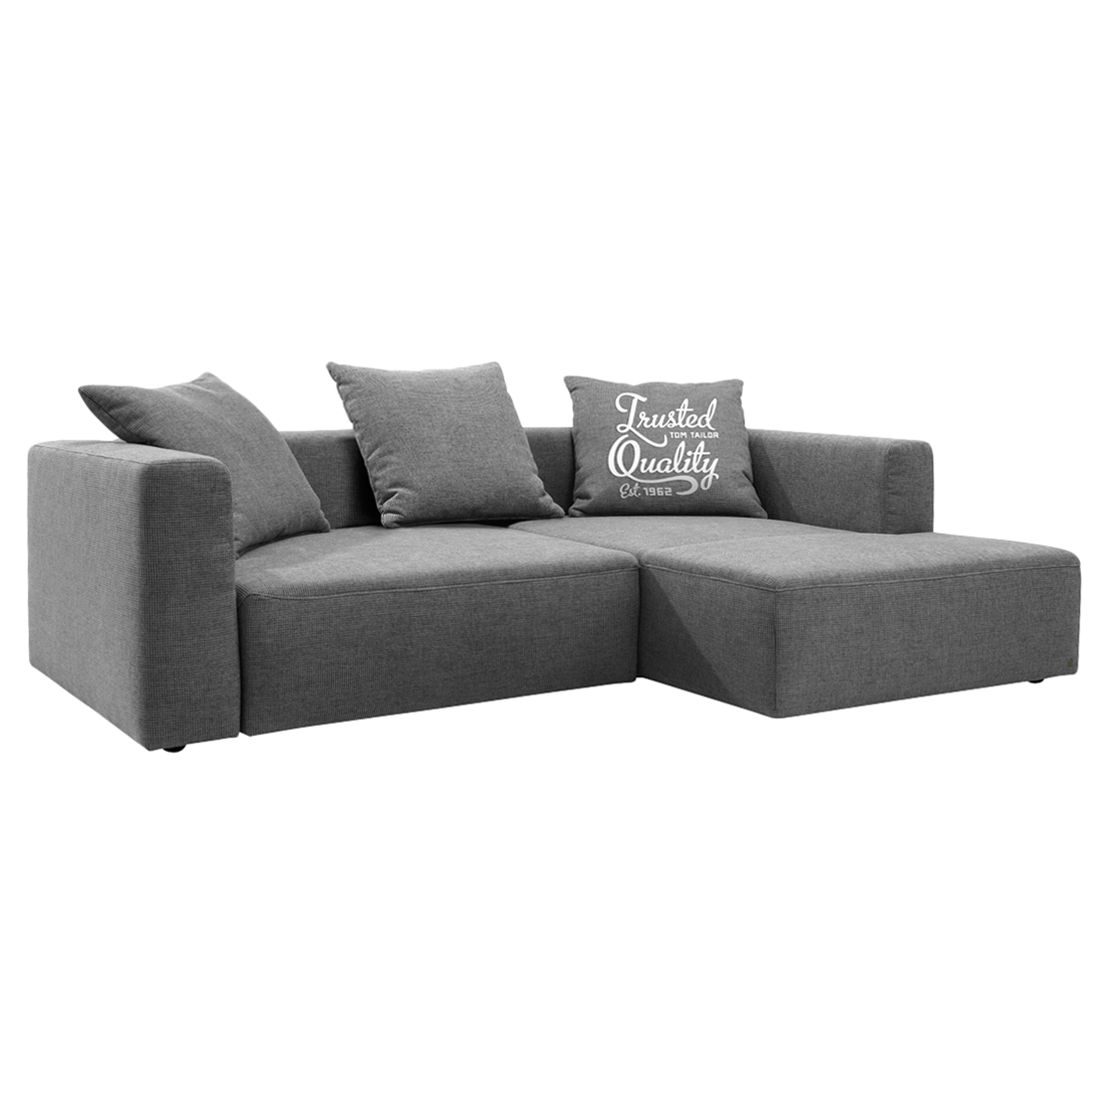 ecksofa heaven casual webstoff dunkelgrau longchair davorstehend rechts ohne. Black Bedroom Furniture Sets. Home Design Ideas